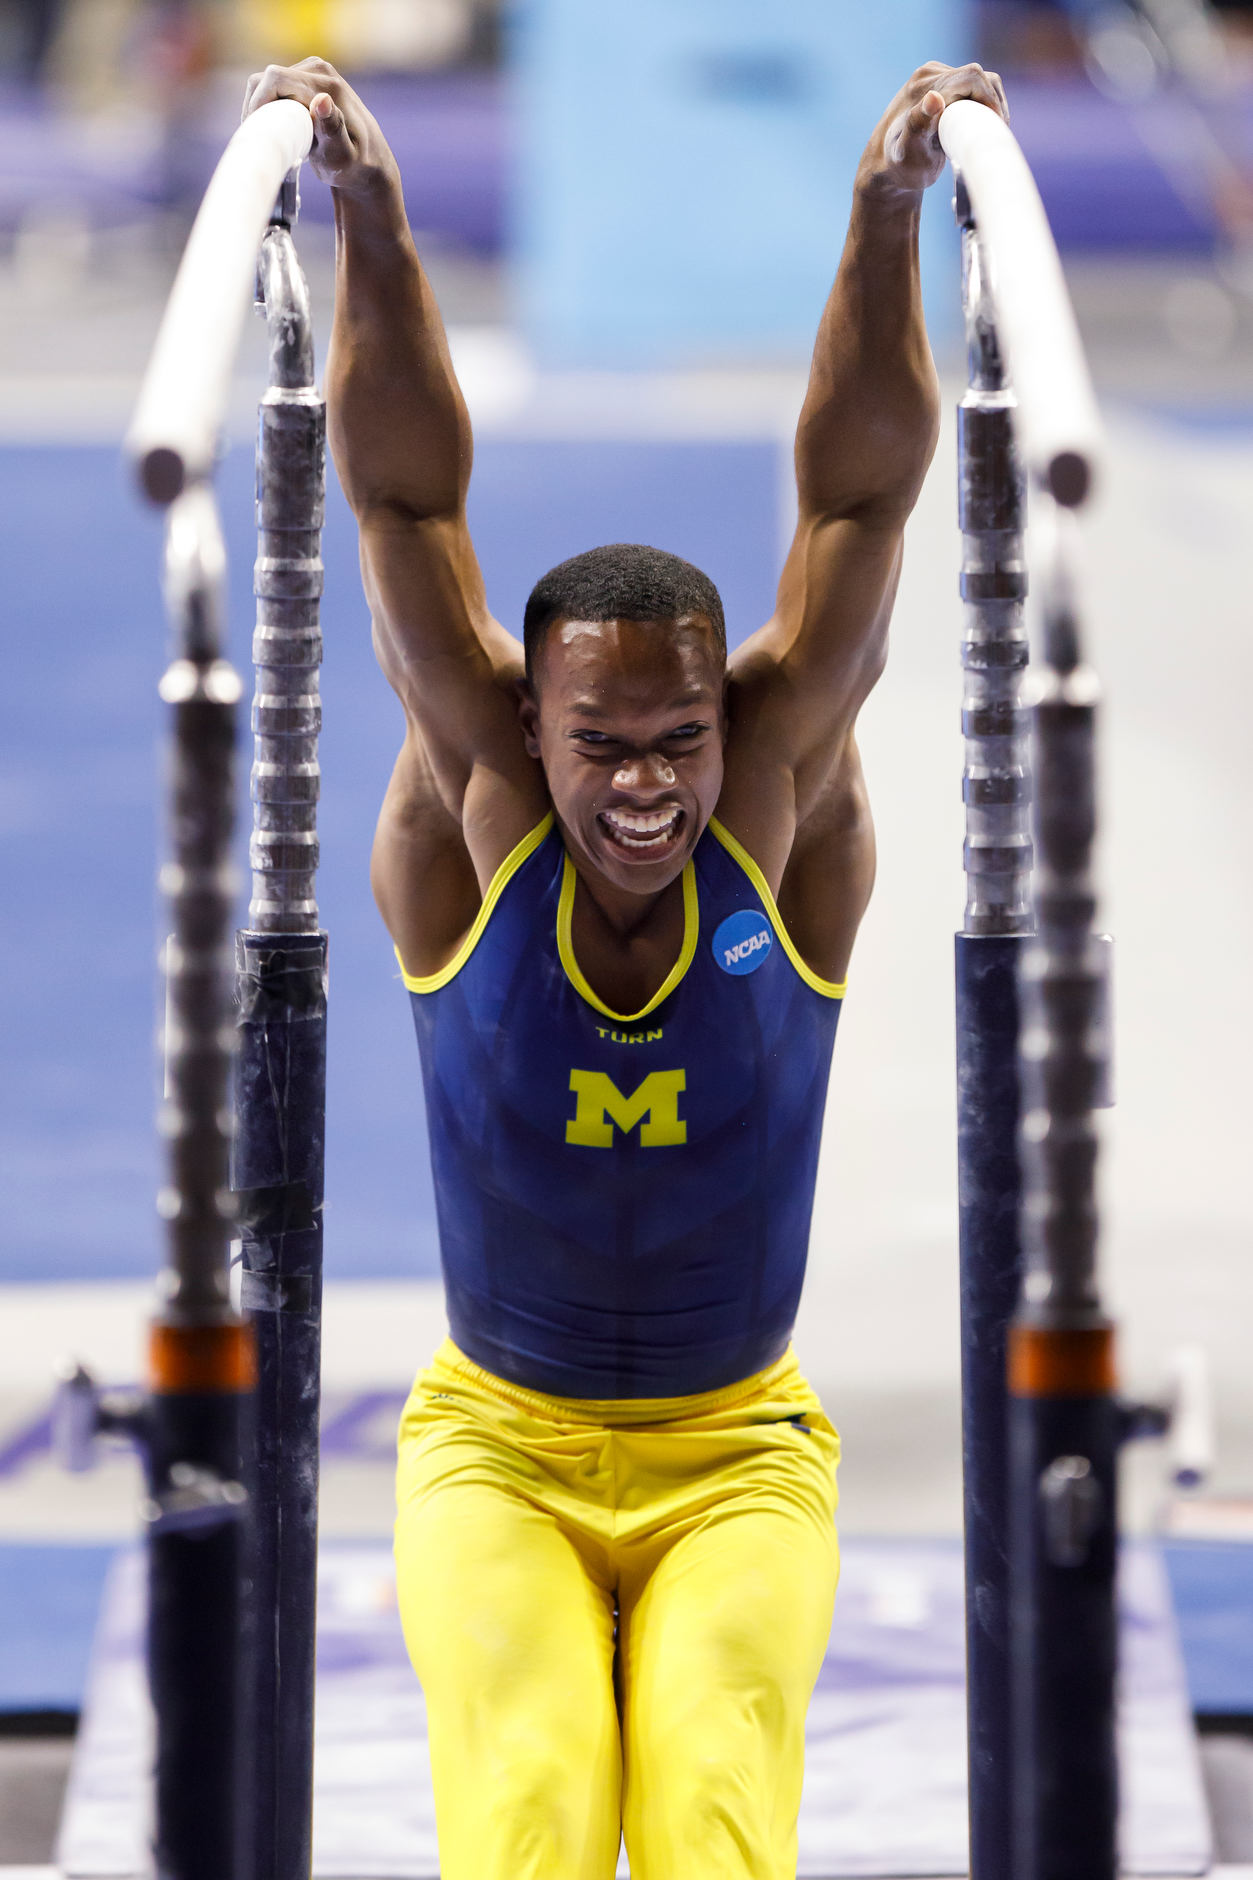 Michigan's Emyre Cole competes on the parallel bars at the NCAA Men's Gymnastics Championships on Saturday, April 20, 2019, at the State Farm Center in Champaign, Illinois. (Photo by James Brosher)